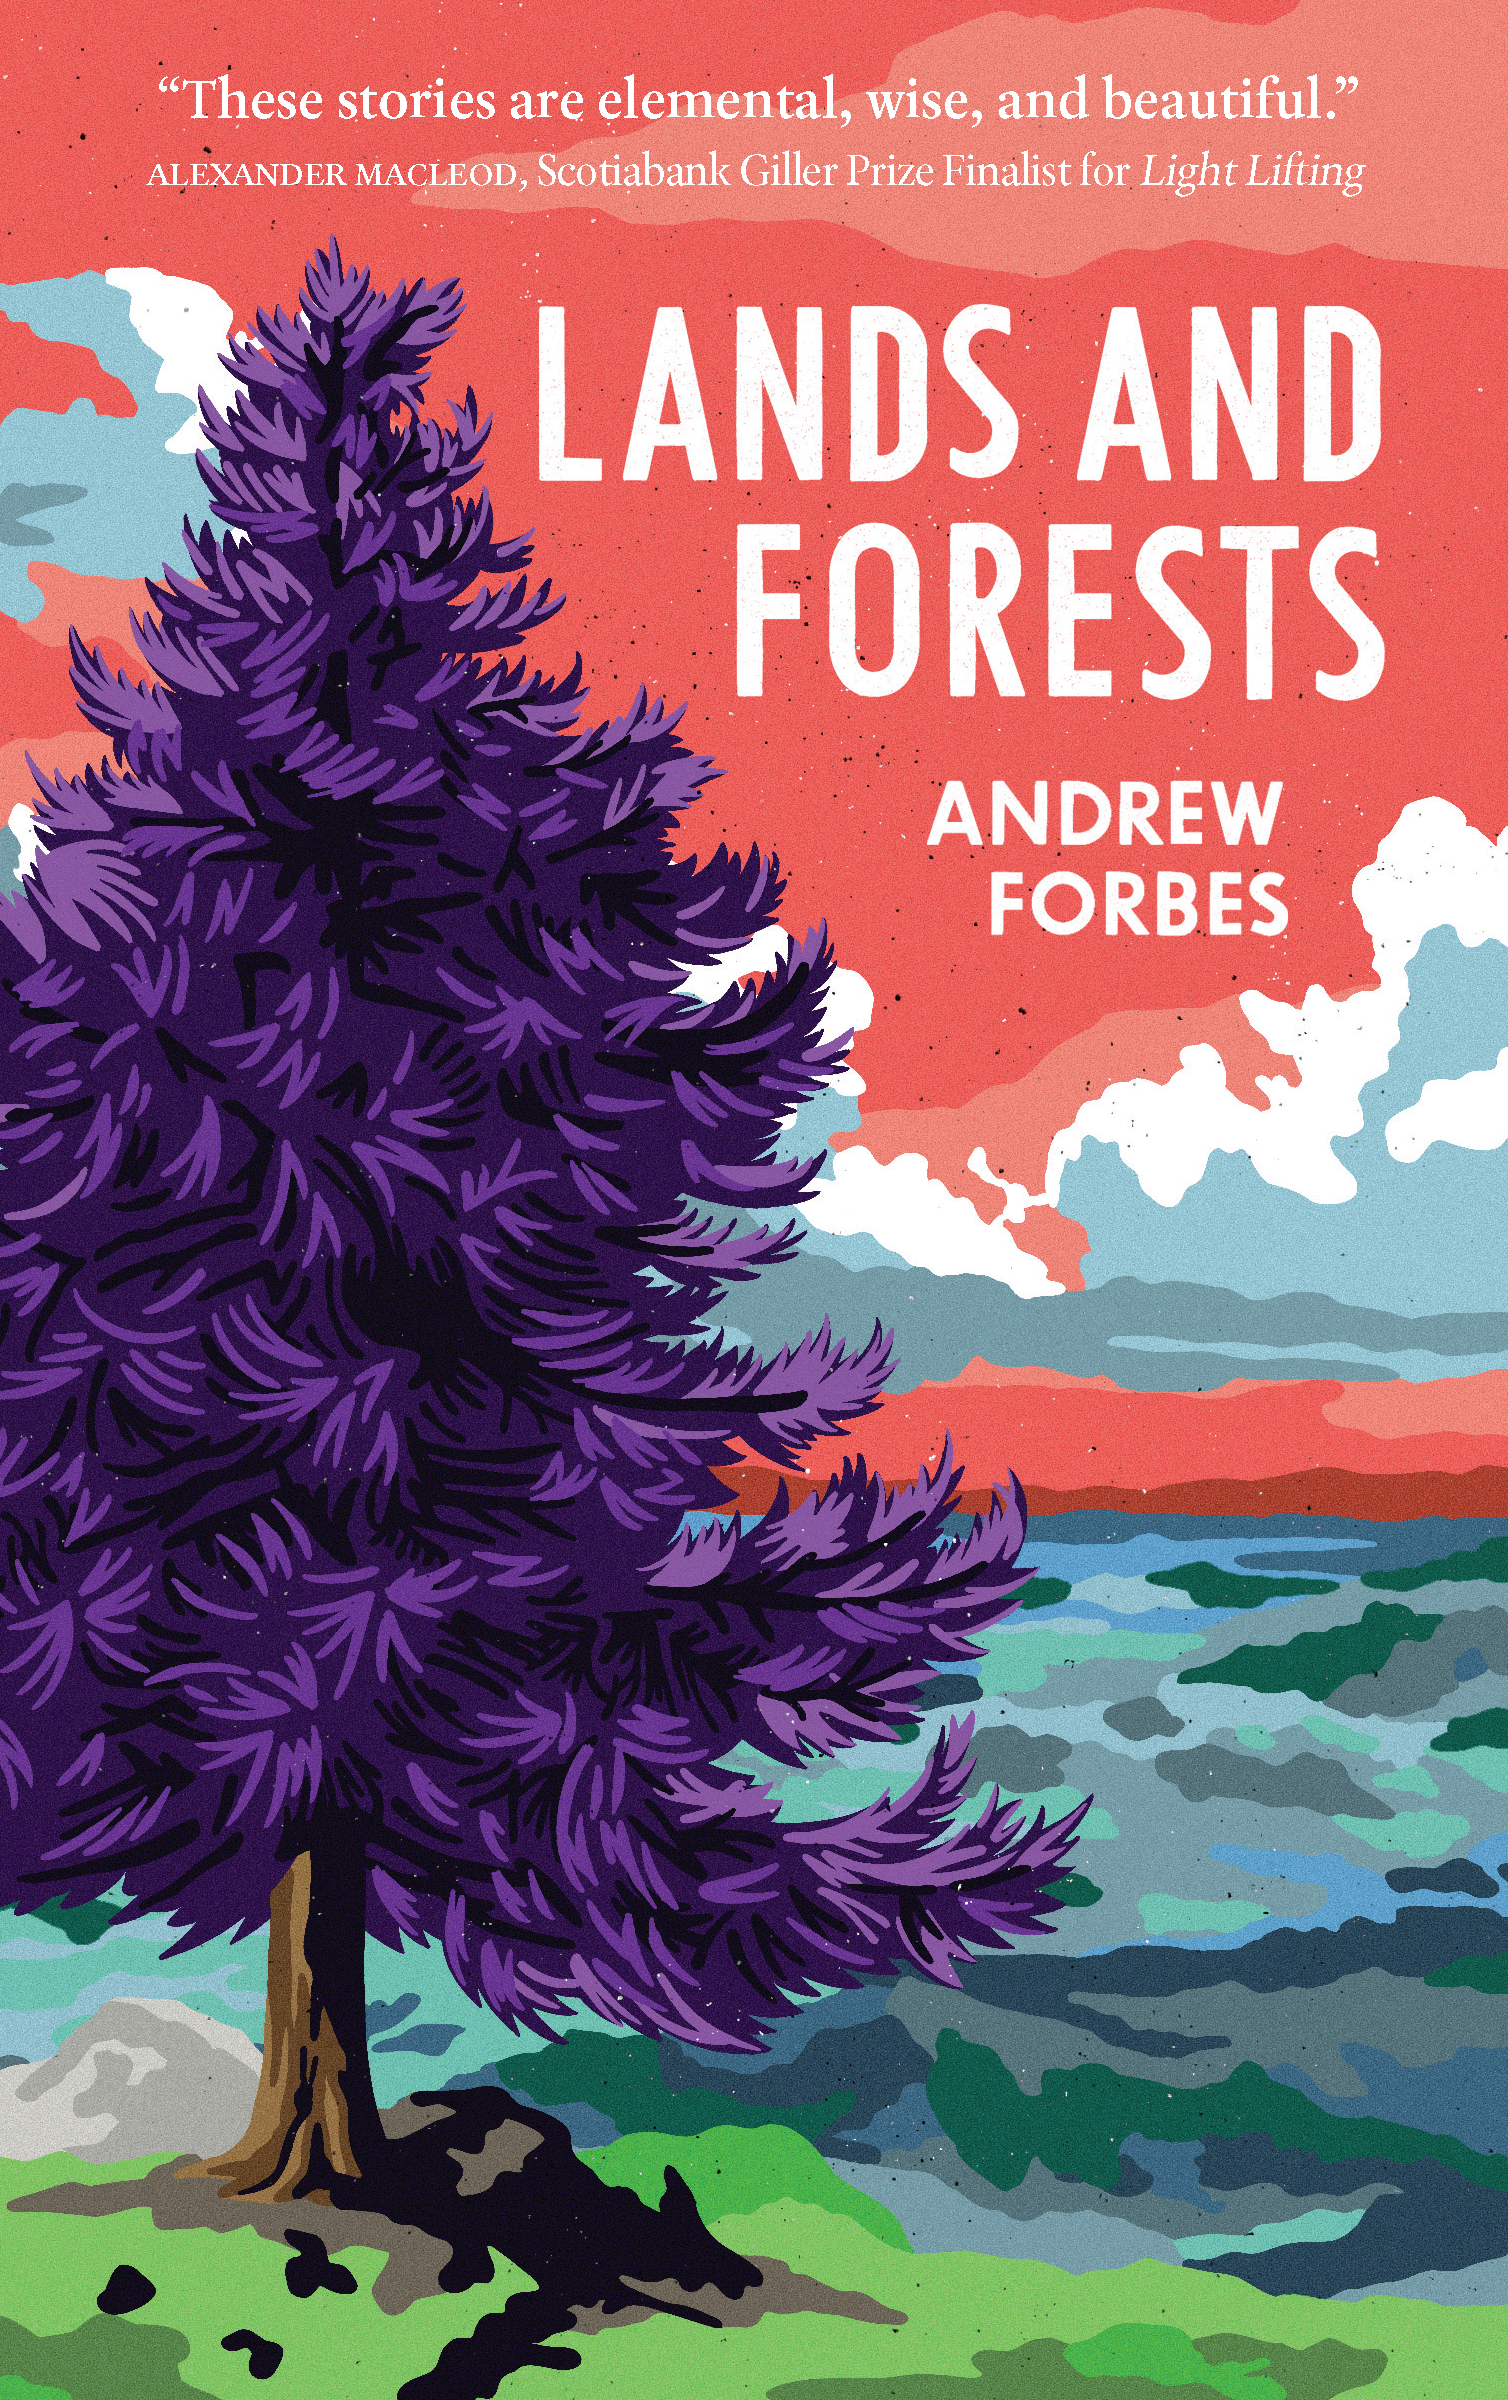 Lands-Forests-Andrew-Forbes